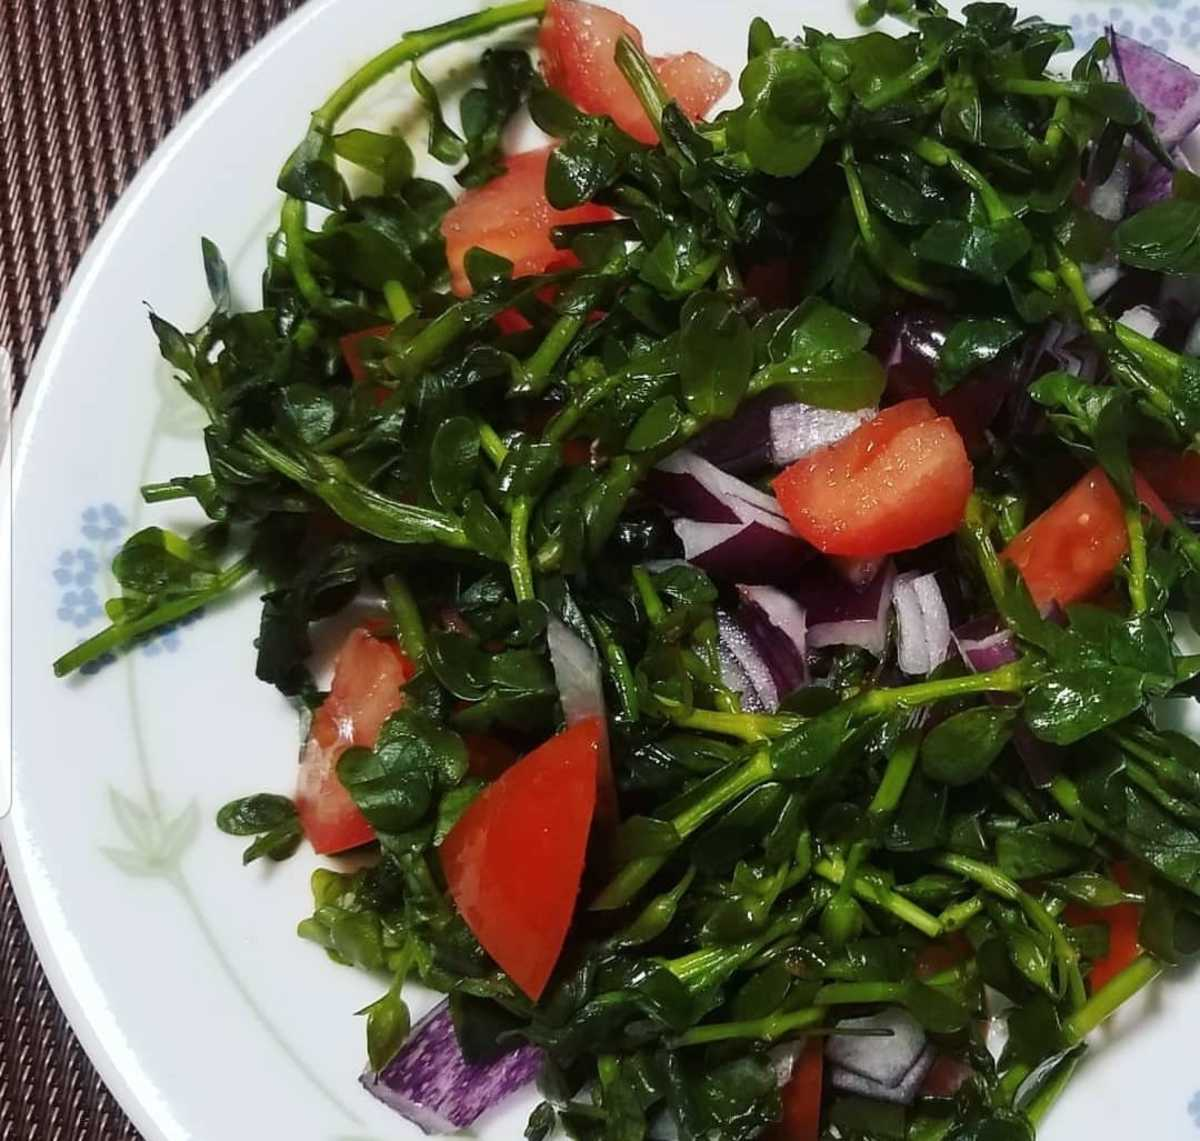 Steamed bacopa monniere with tomatoes. Chopped ginger and onions can be added too. And either your choice of soy sauce, lemon or fish sauce whichever you prefer.